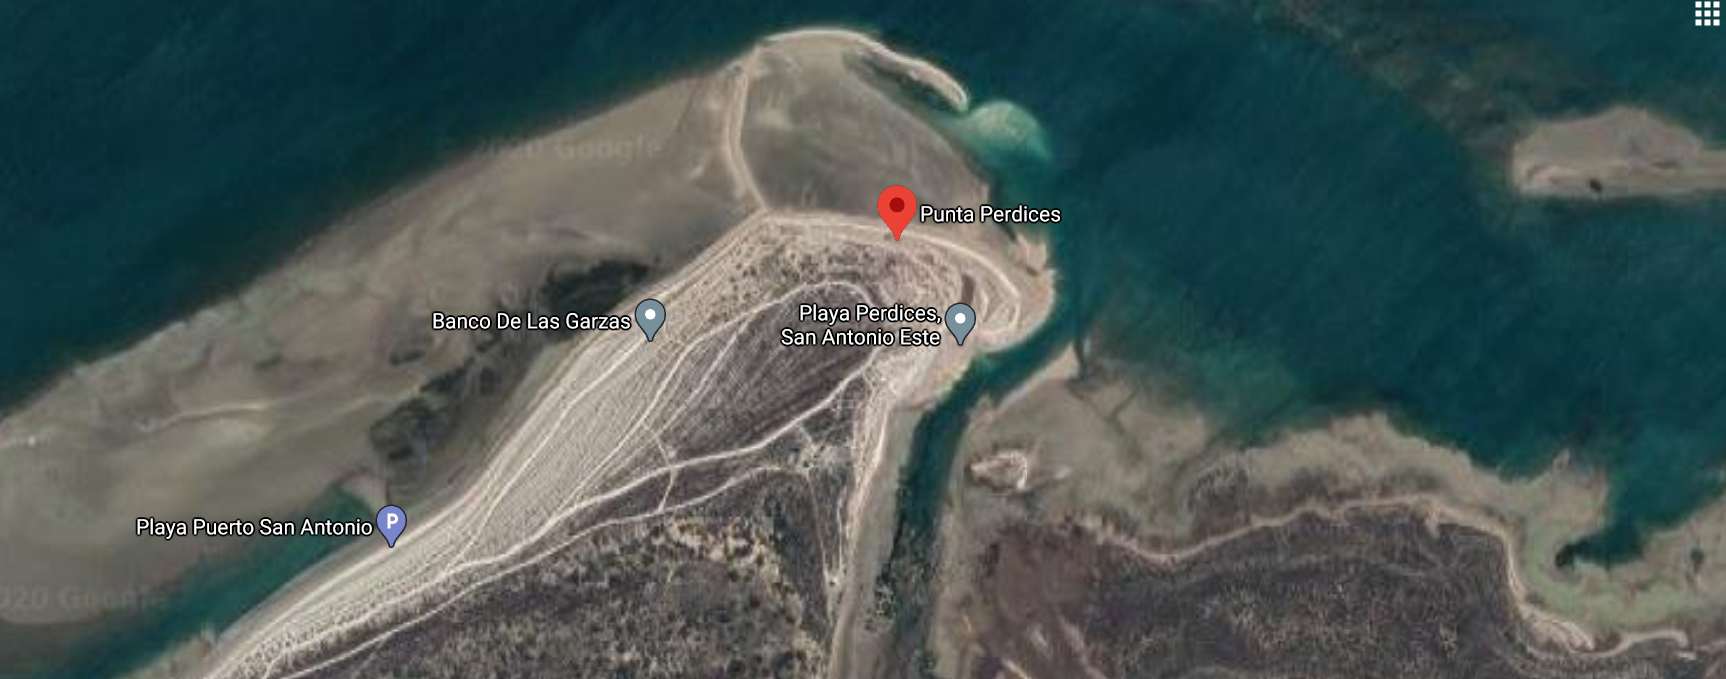 Punta Perdices desde Google Maps